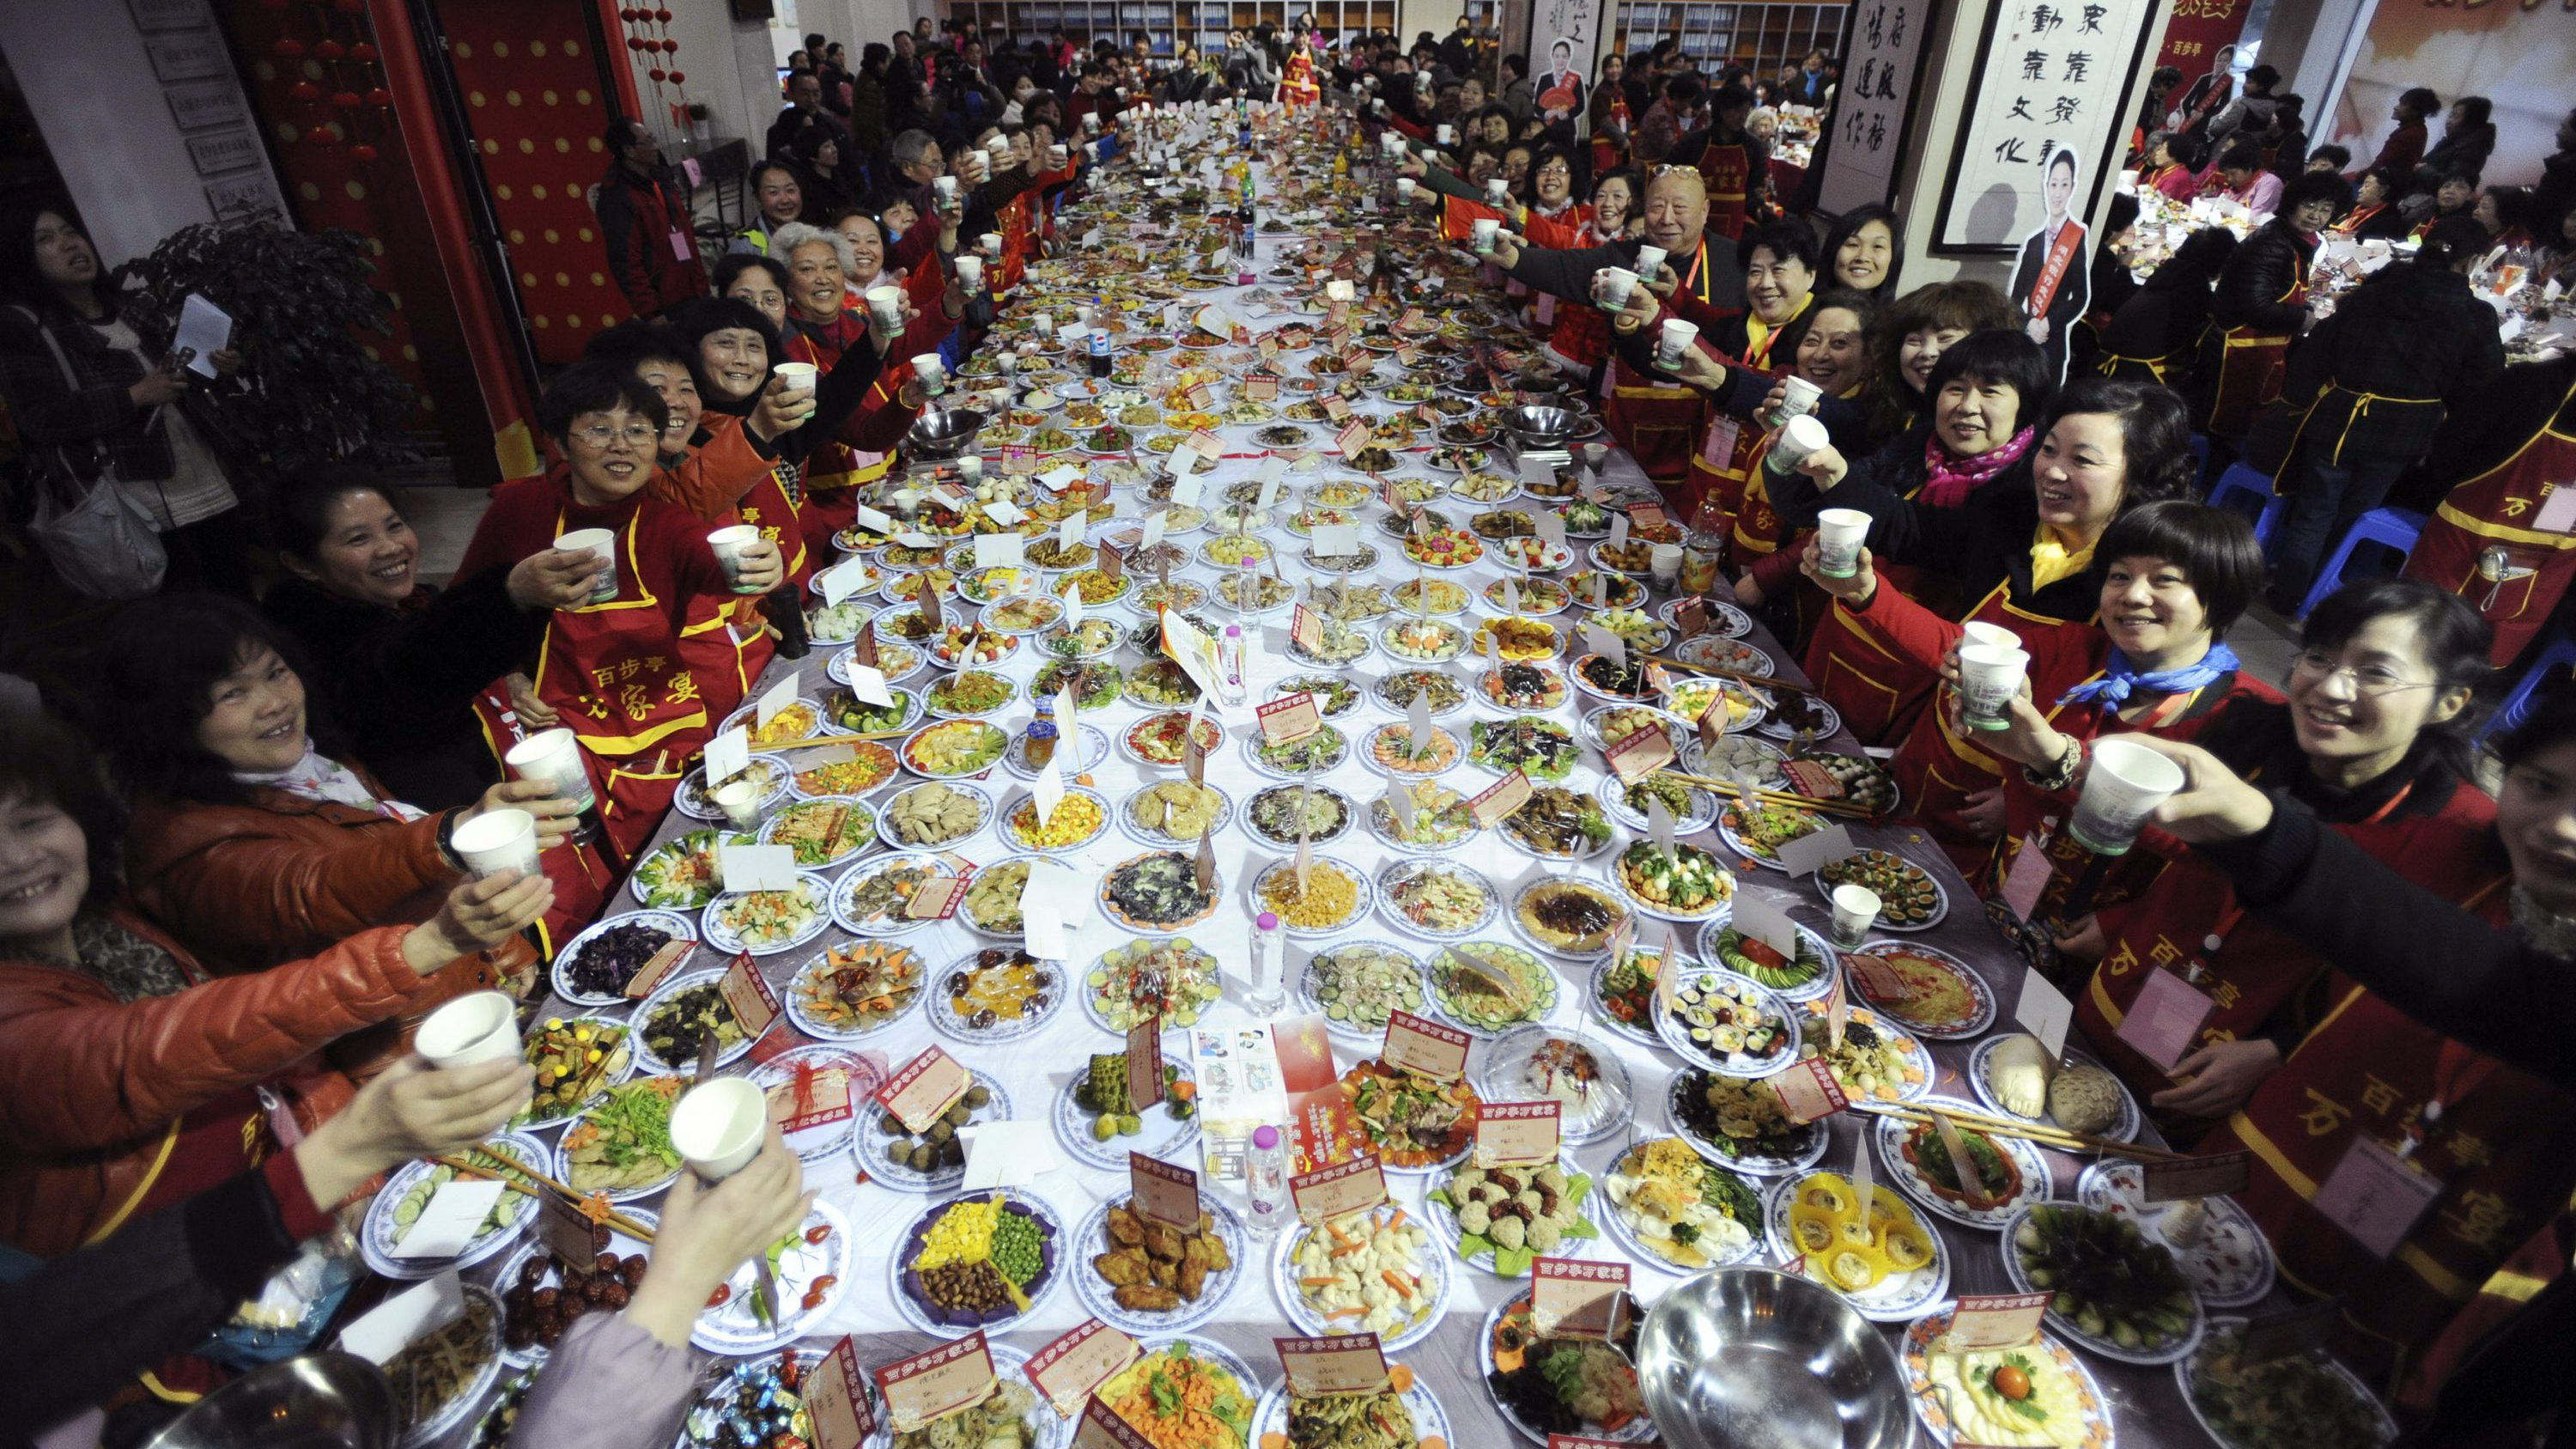 "Residents raise their glasses as they pose for photographs at a table full of dishes during a ""Ten thousand families dinner"" organized by a local community to celebrate the upcoming Chinese Lunar New Year, in Wuhan, Hubei province January 24, 2014. A residential community in Wuhan hosted the mass dinner on Friday serving over 30,000 people with over 11,000 dishes of food cooked by the families of the community, local media reported. Picture taken January 24, 2014."